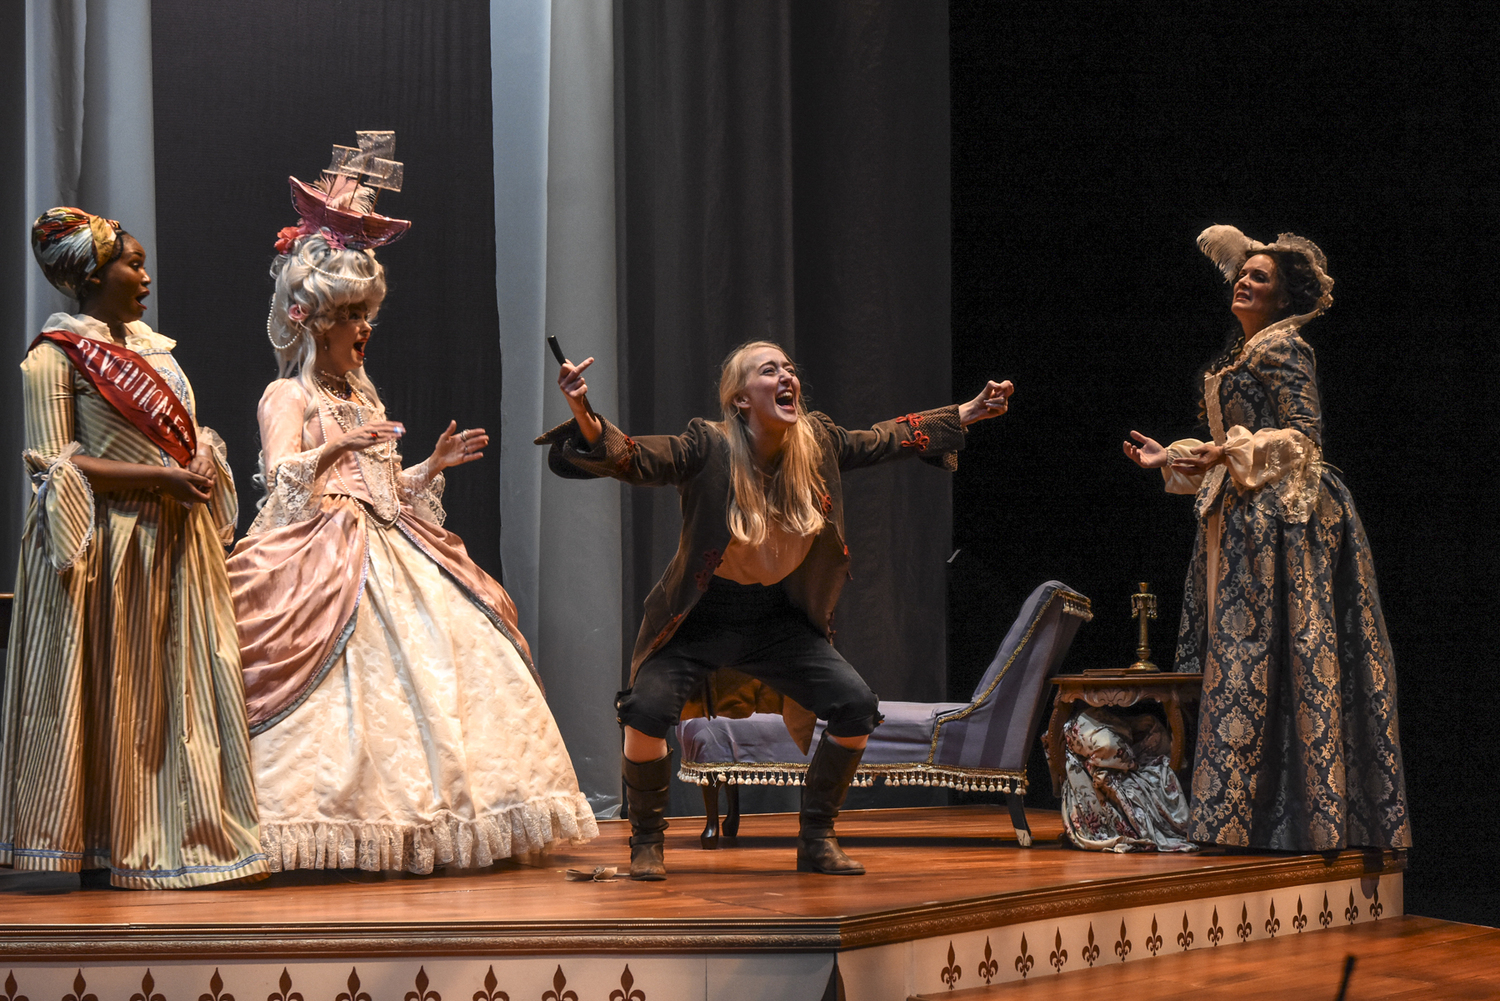 BWW Review: THE REVOLUTIONISTS at Tempe Center For The Arts